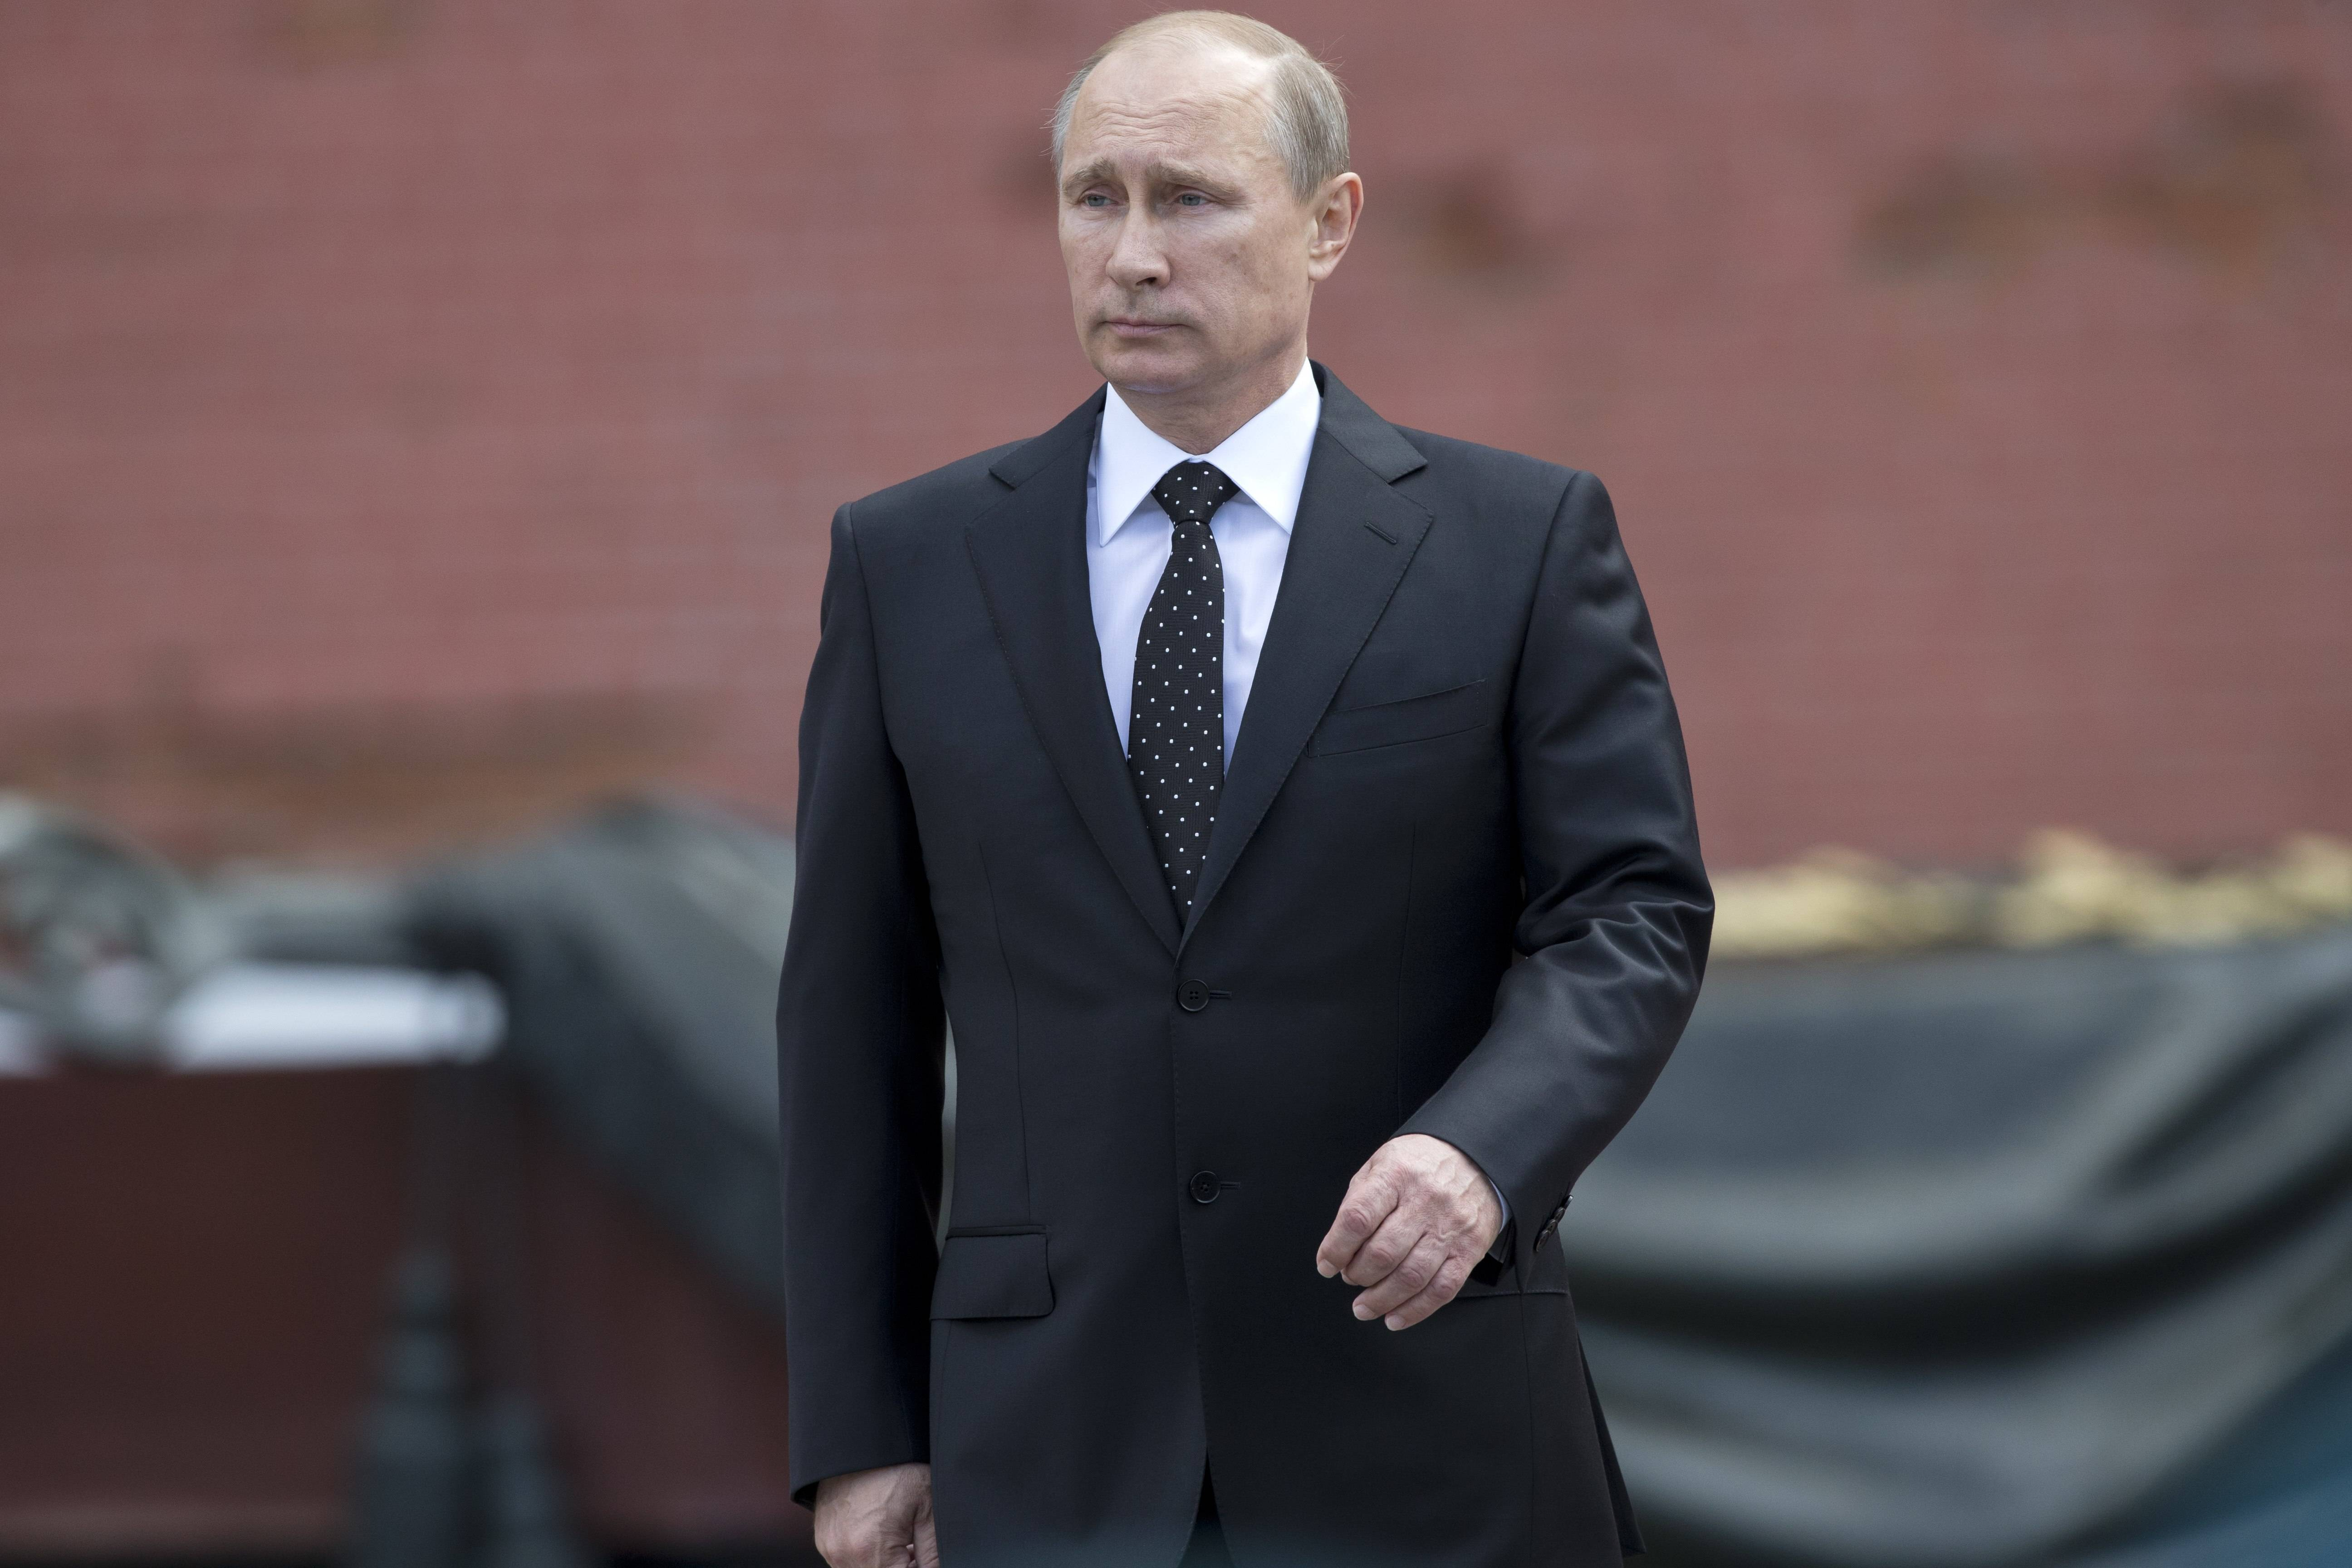 Russian Vladimir Putin has asked parliament to cancel a resolution that sanctions the use of military force in Ukraine. Putin wrote to the head of parliament's upper house asking that a March 1 request authorizing the use of force in neighboring Ukraine be withdrawn.